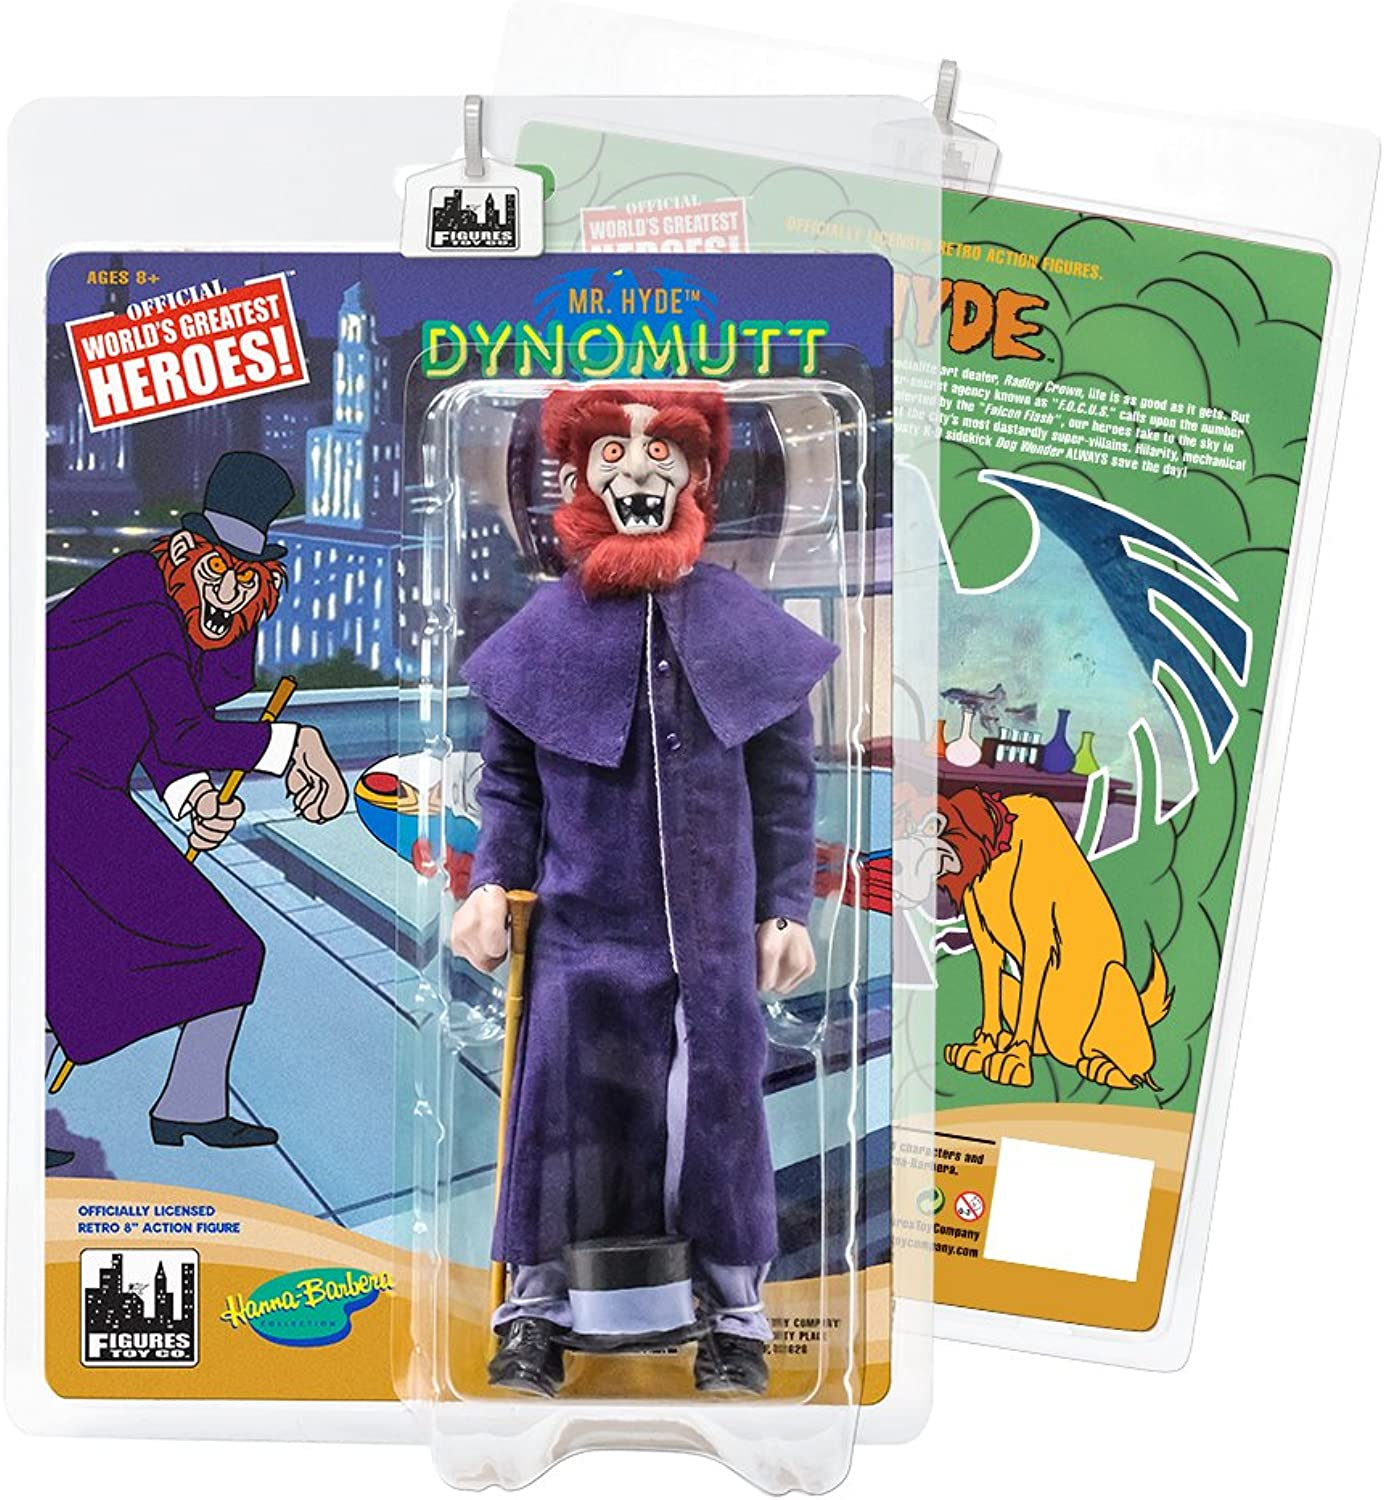 Dynomutt Retro Action Figures Series Mr  Mr  Mr  Hyde fb3aff